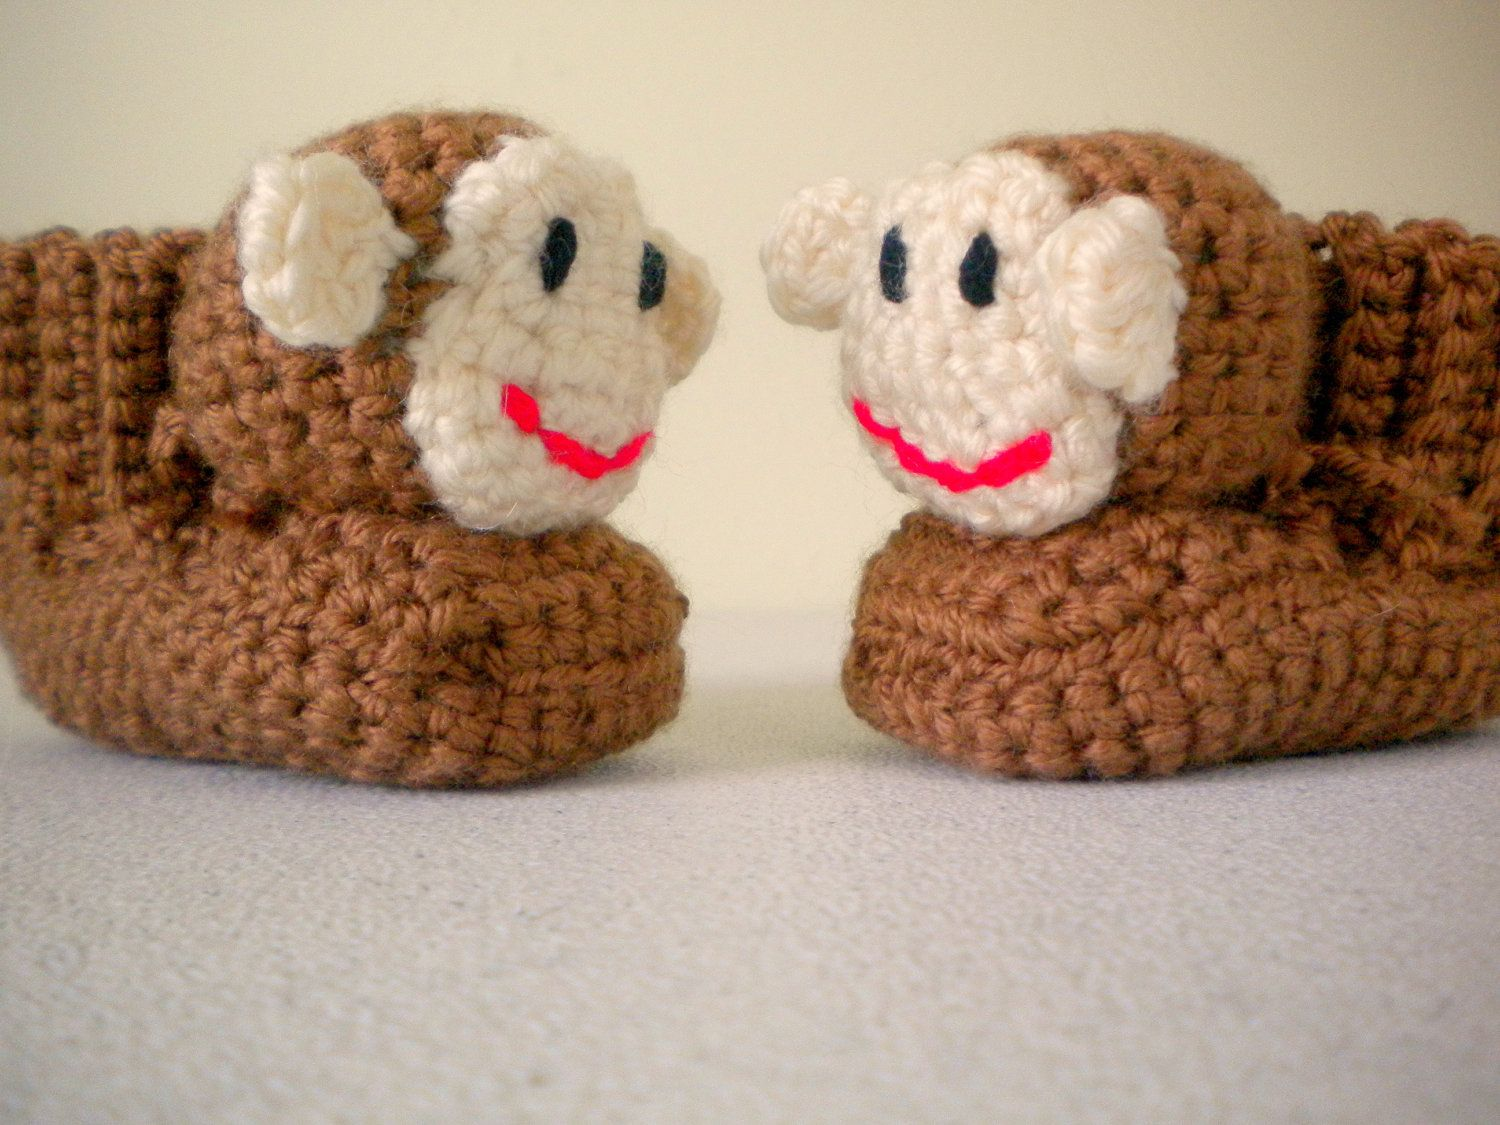 Crochet Caramel Brown Stuffed Monkey Booties Slippers With